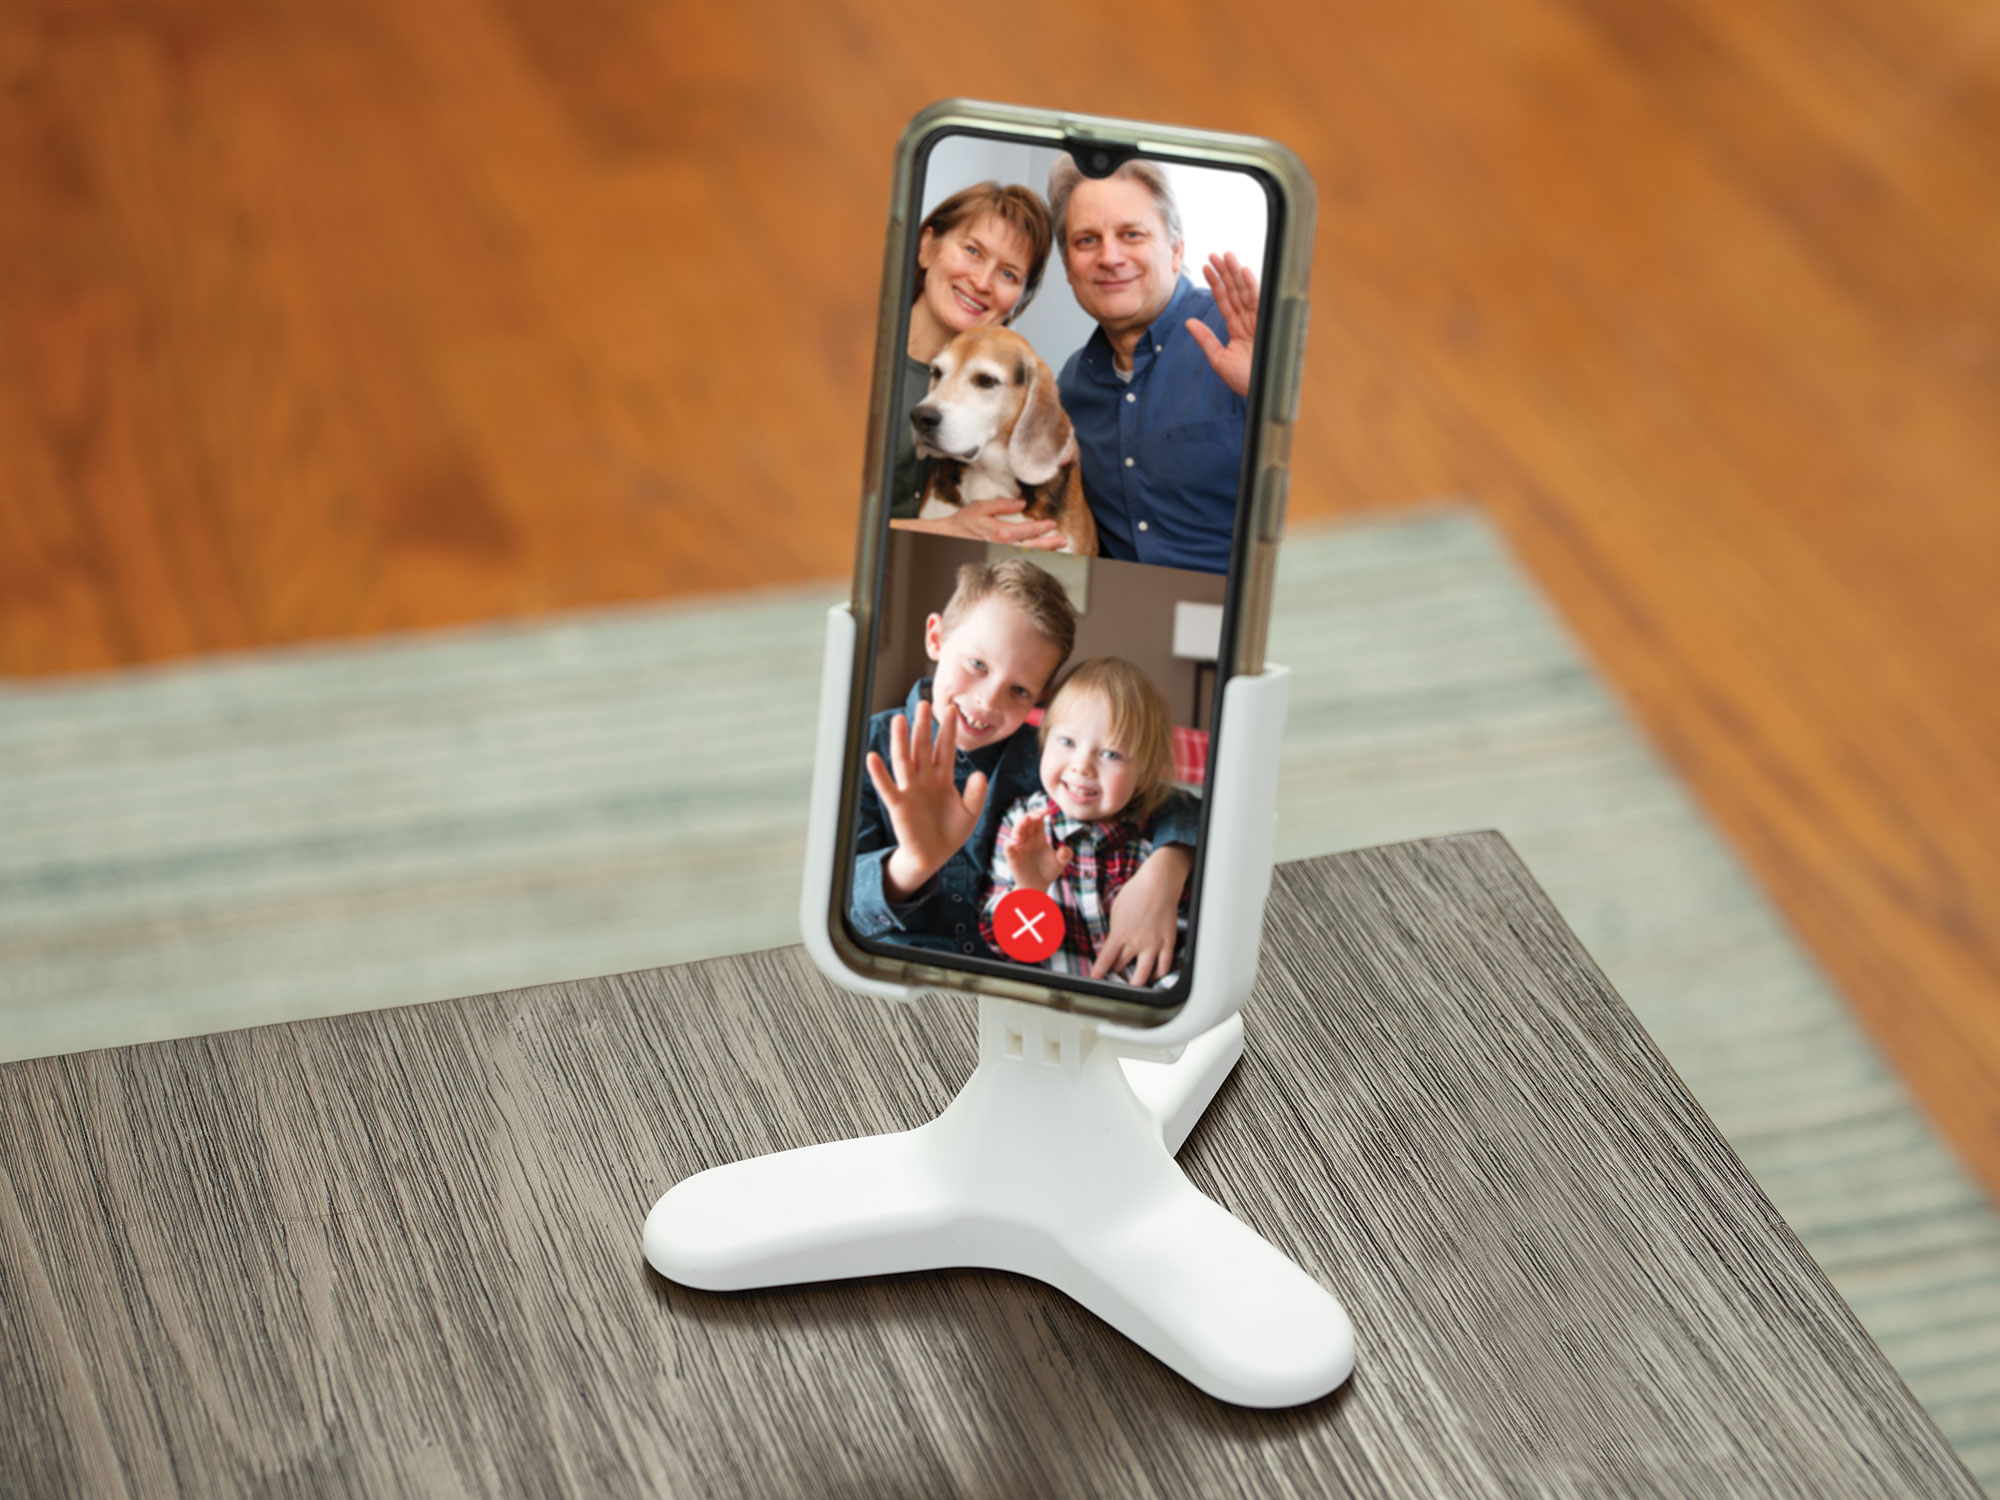 Virtual get together's with Dad are a great way to celebrate Father's Day